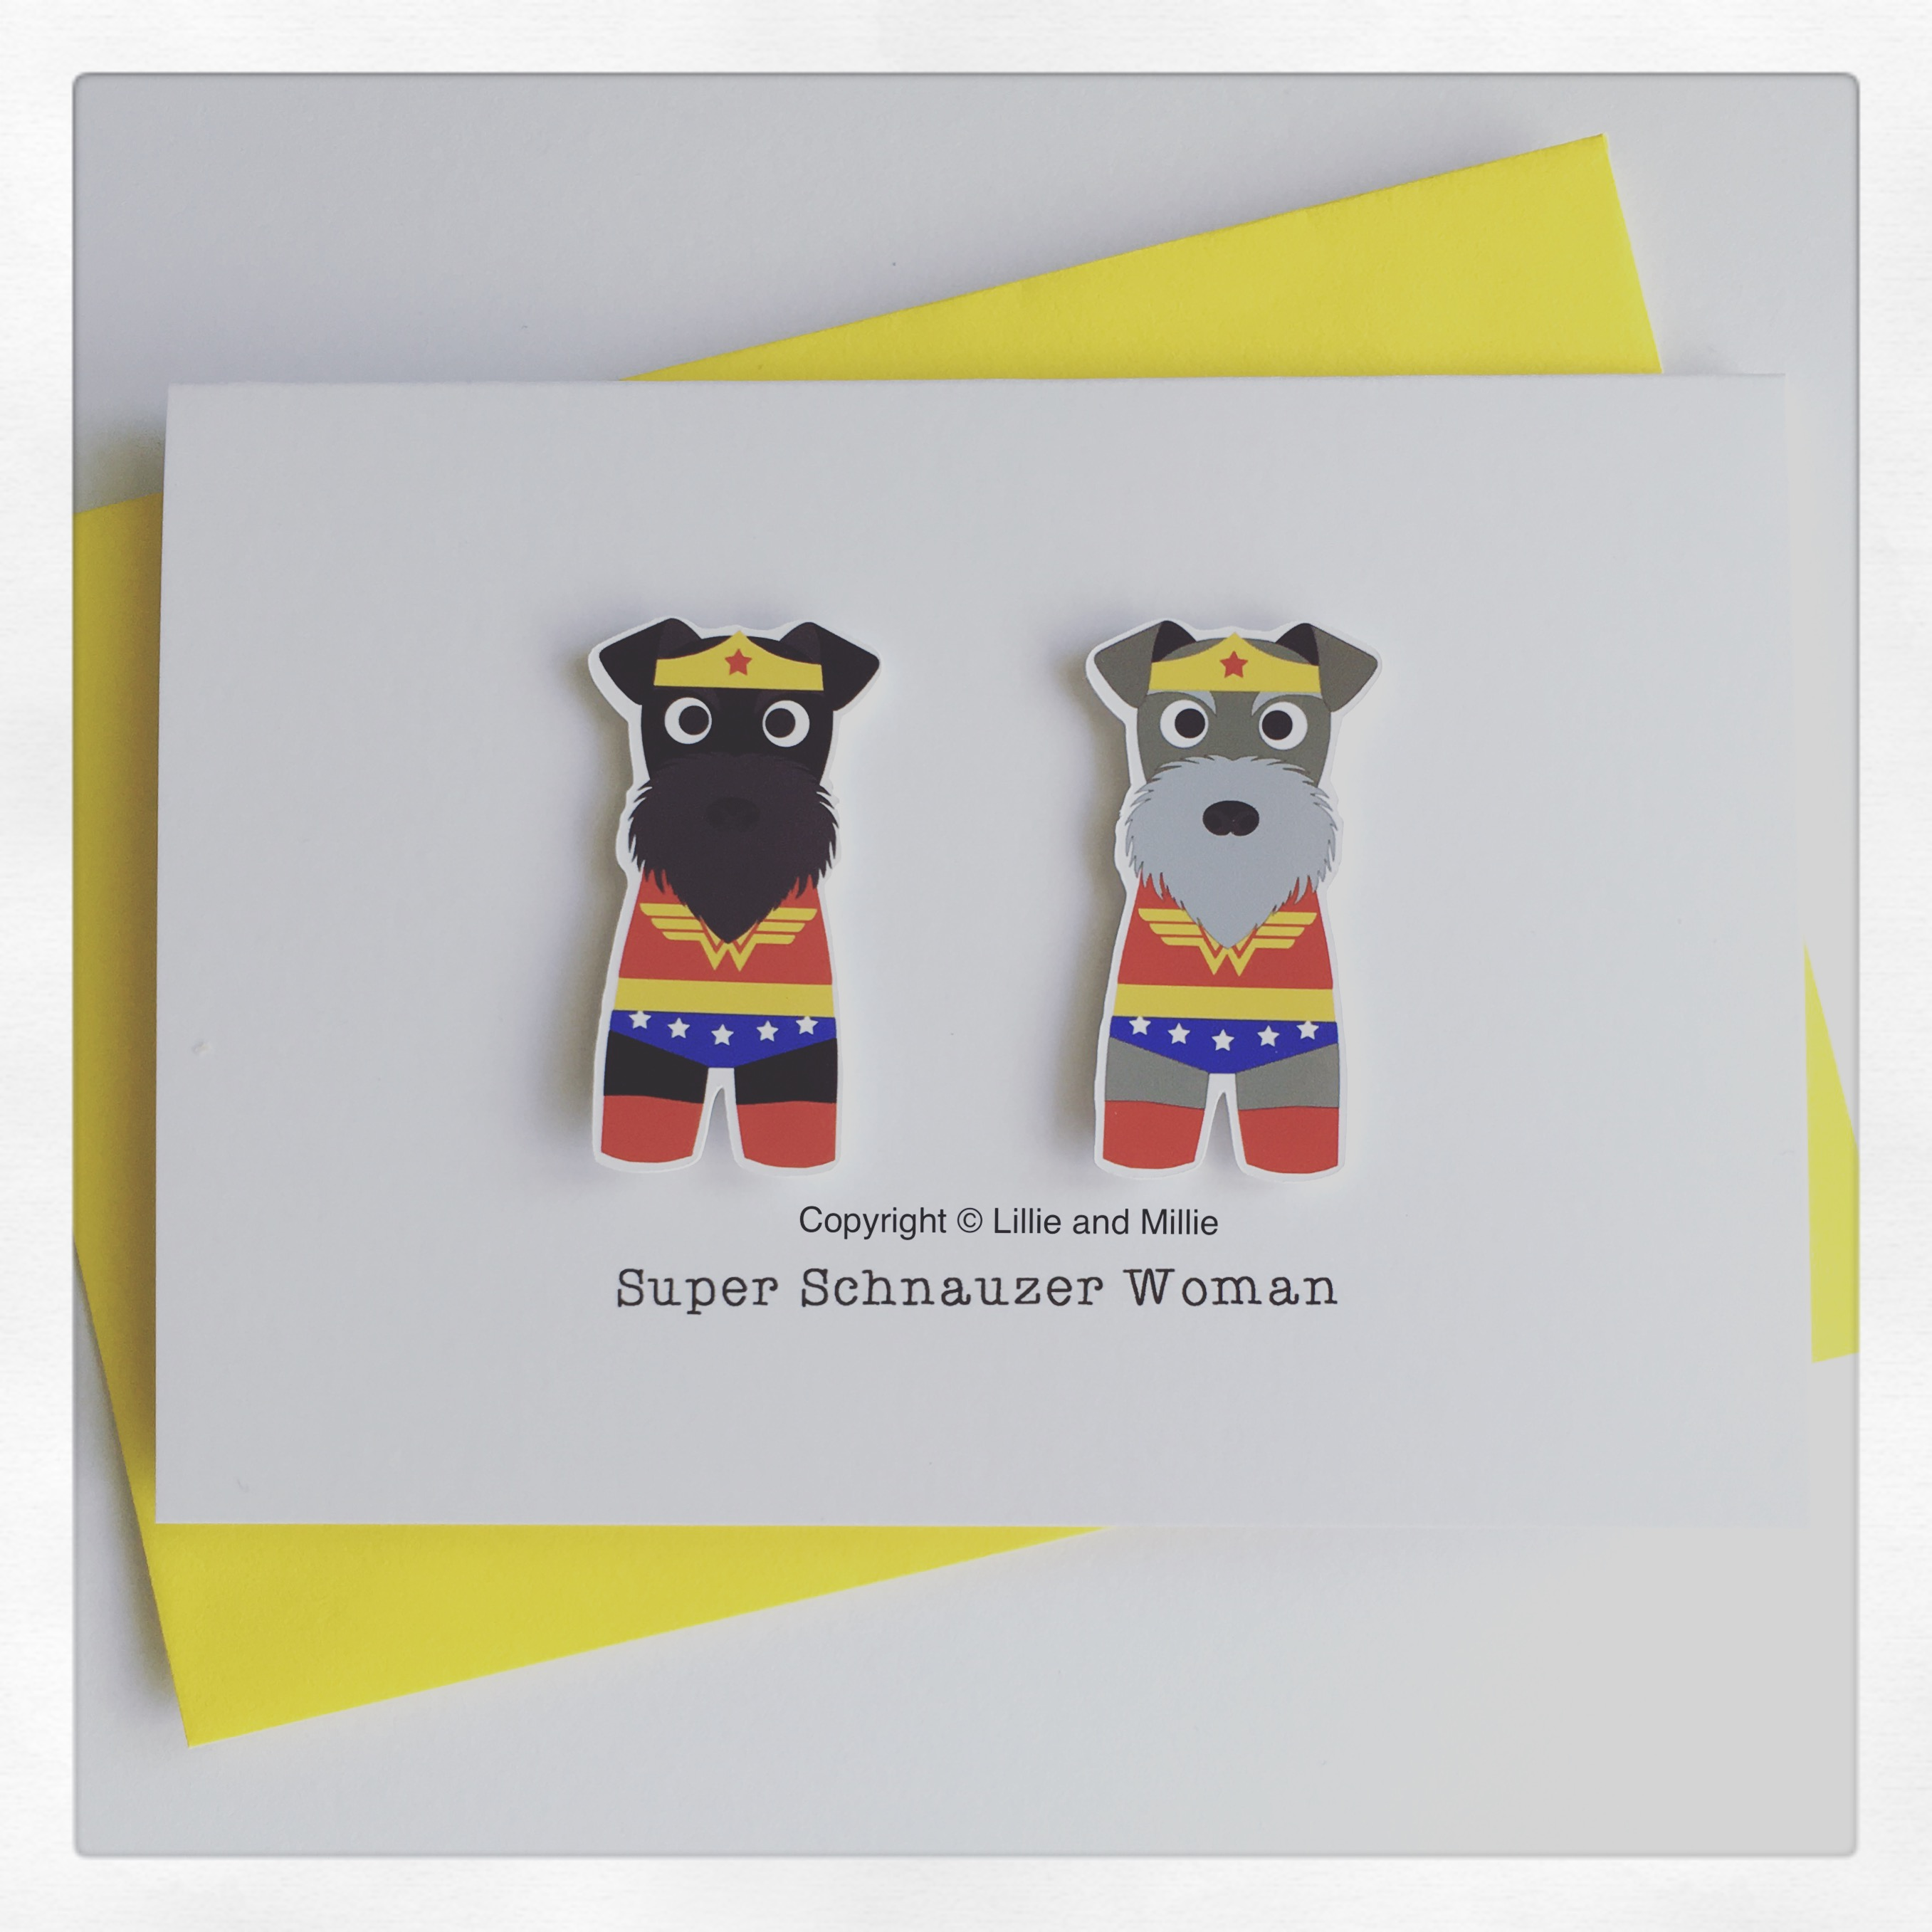 Cute and Cuddly Double Schnauzer Wonder Woman Card